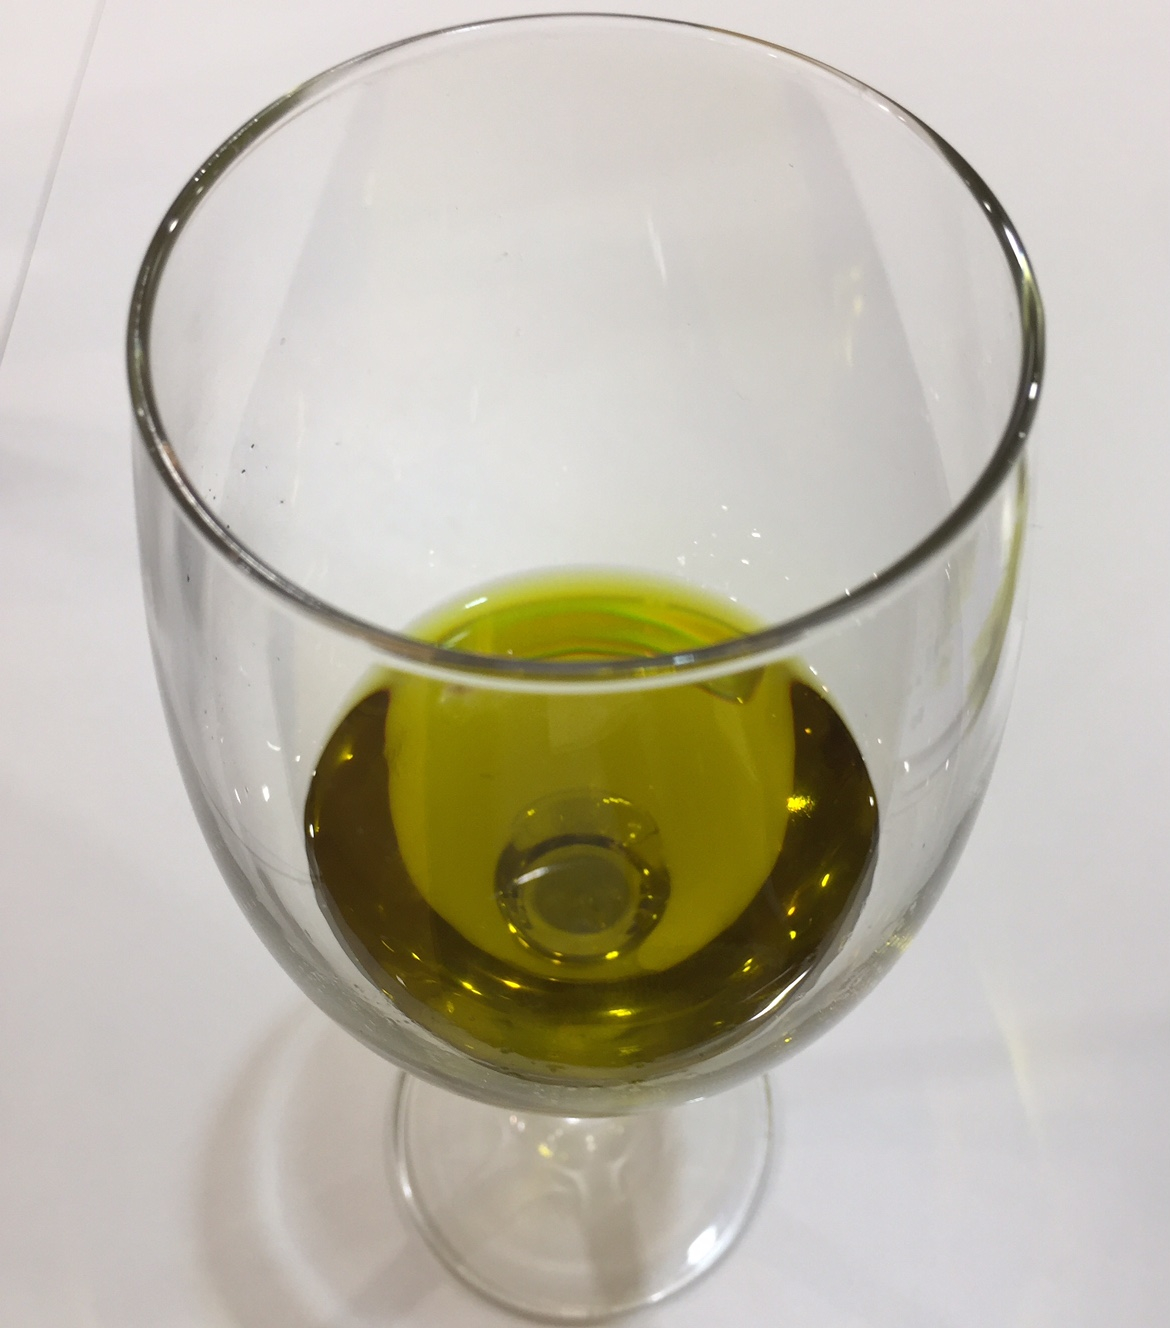 Olive oil stocked In Italy. Update of 31 August 2020